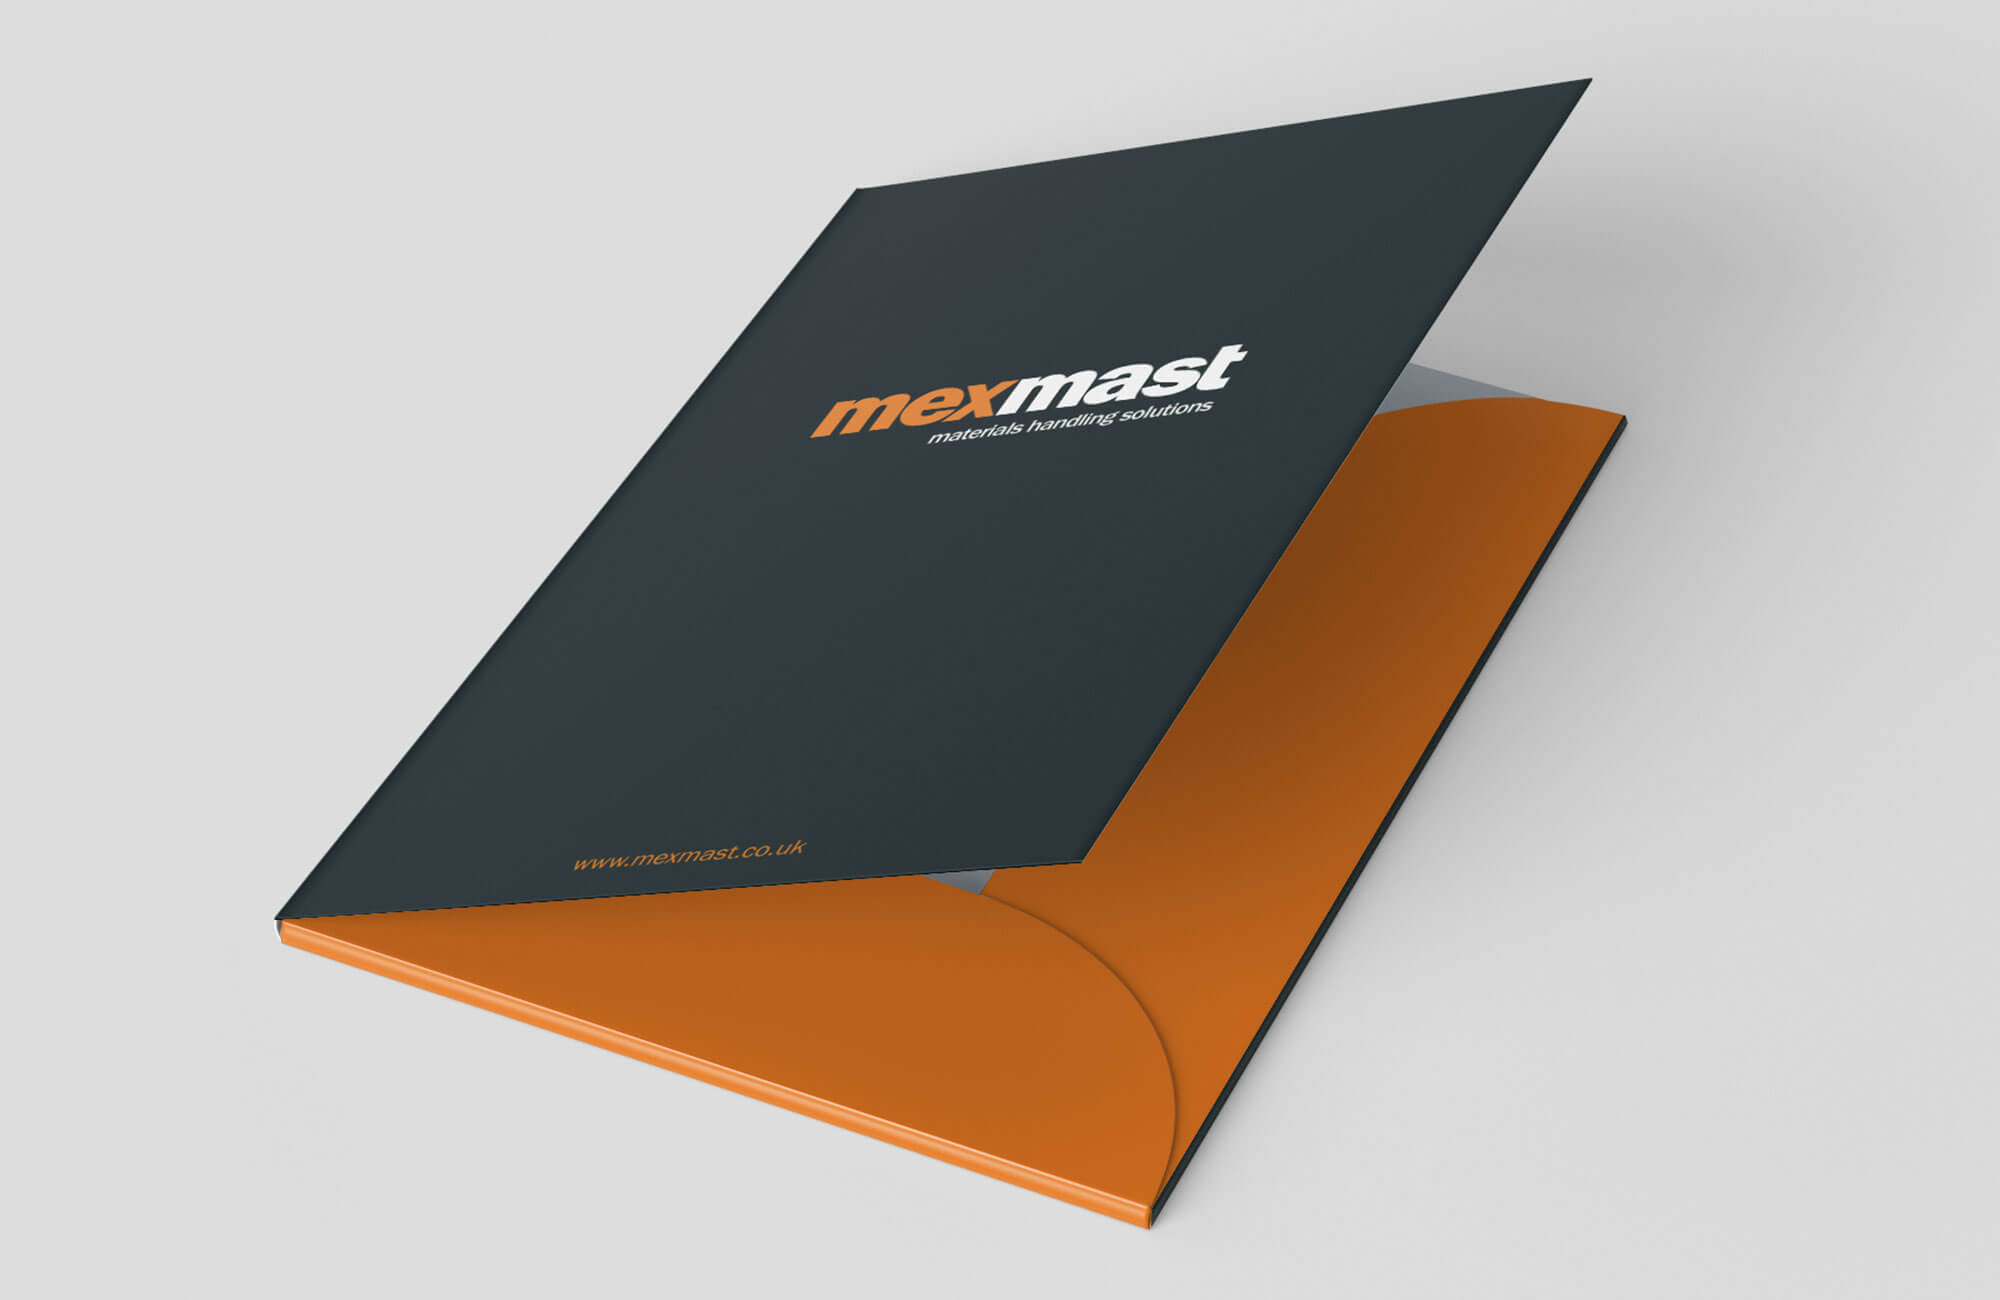 Mexmast Presentation Folder Design